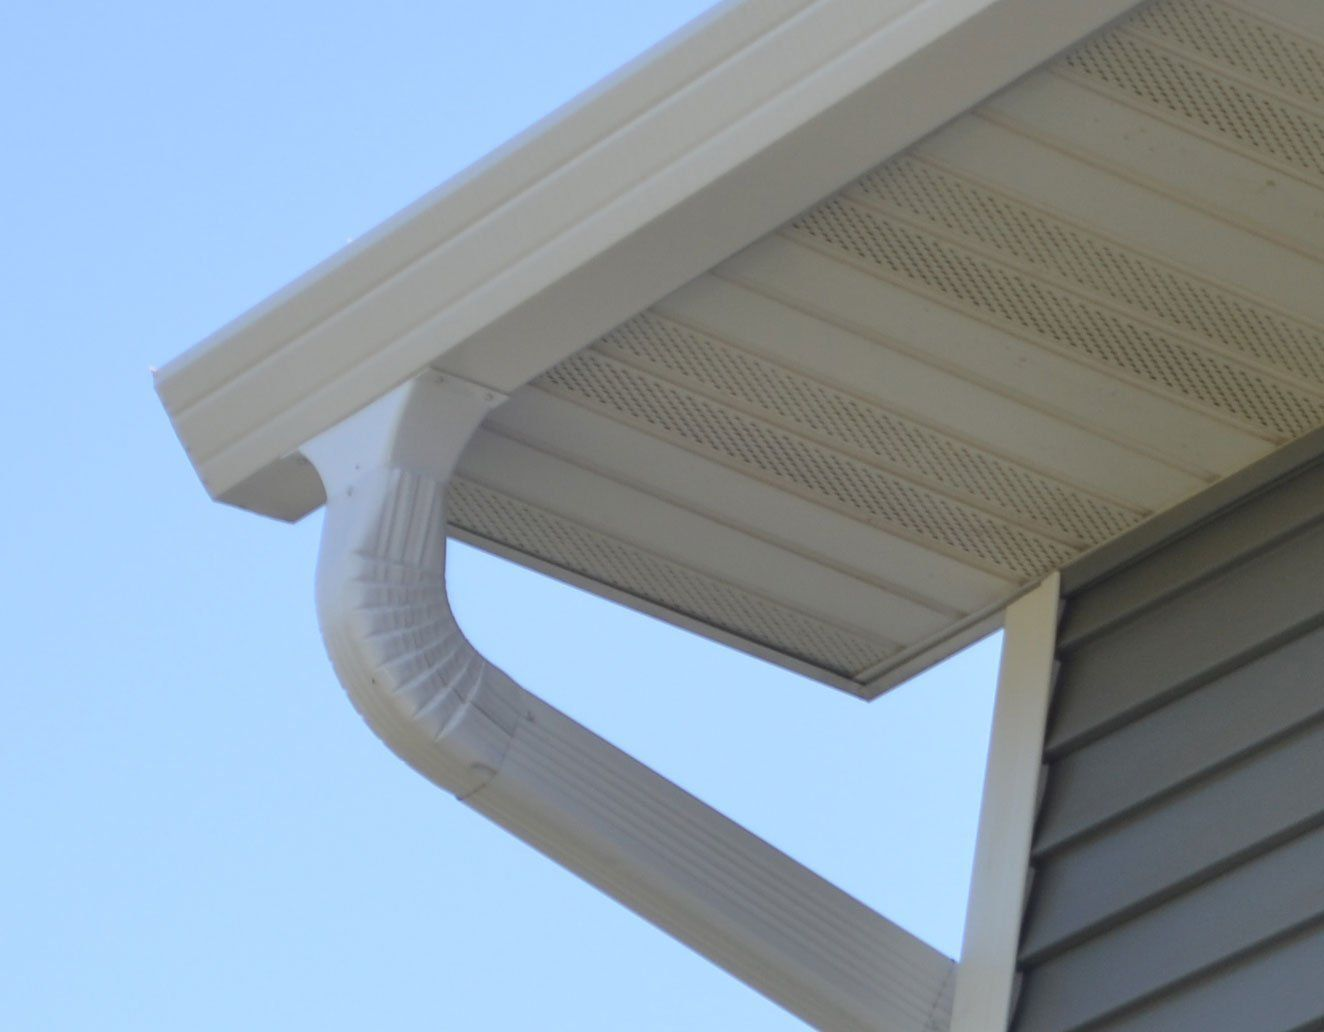 3 X 4 Big Mouth Gutter Outlet Want Additional Info Click On The Image Big Mouth Box Gutter Gutter